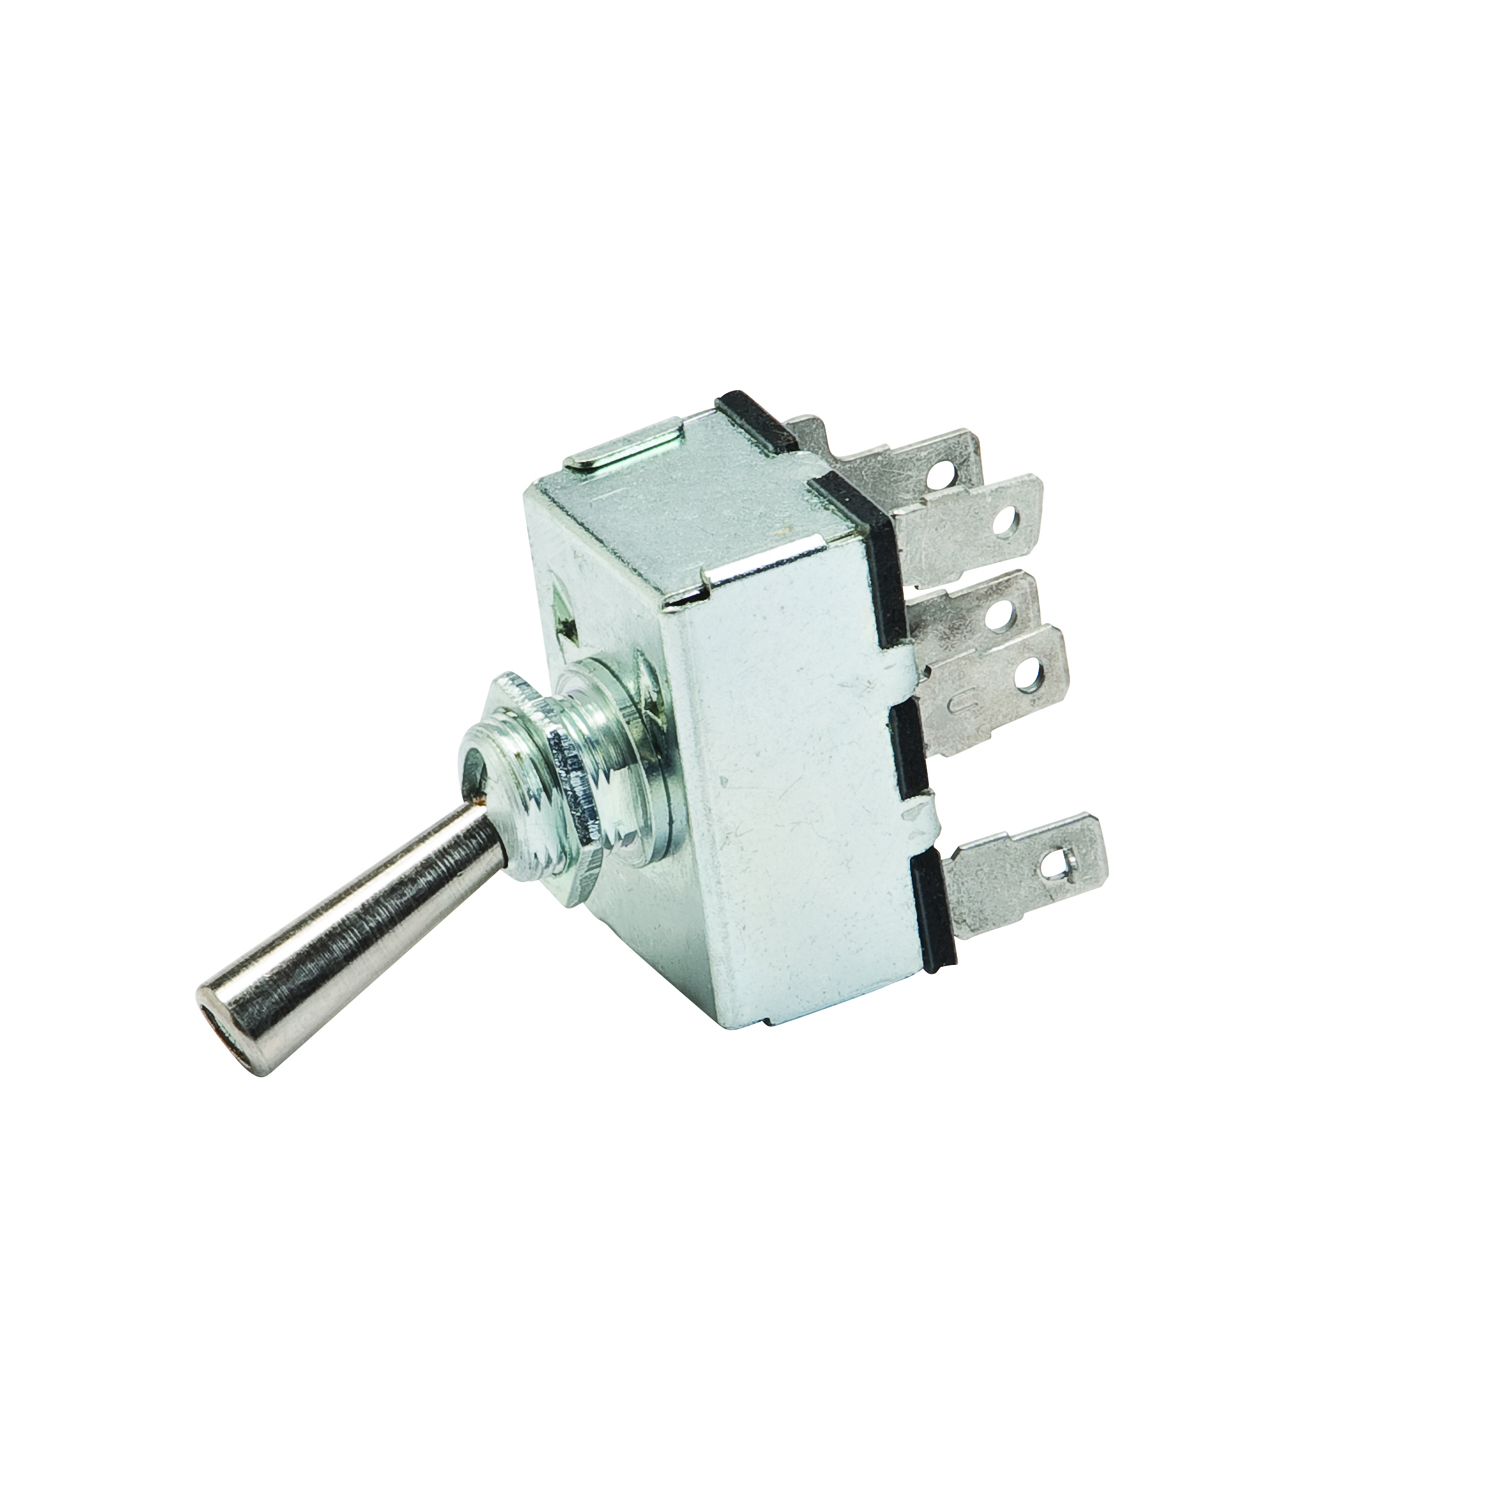 Pto Switch For Grasshopper   604796  184082